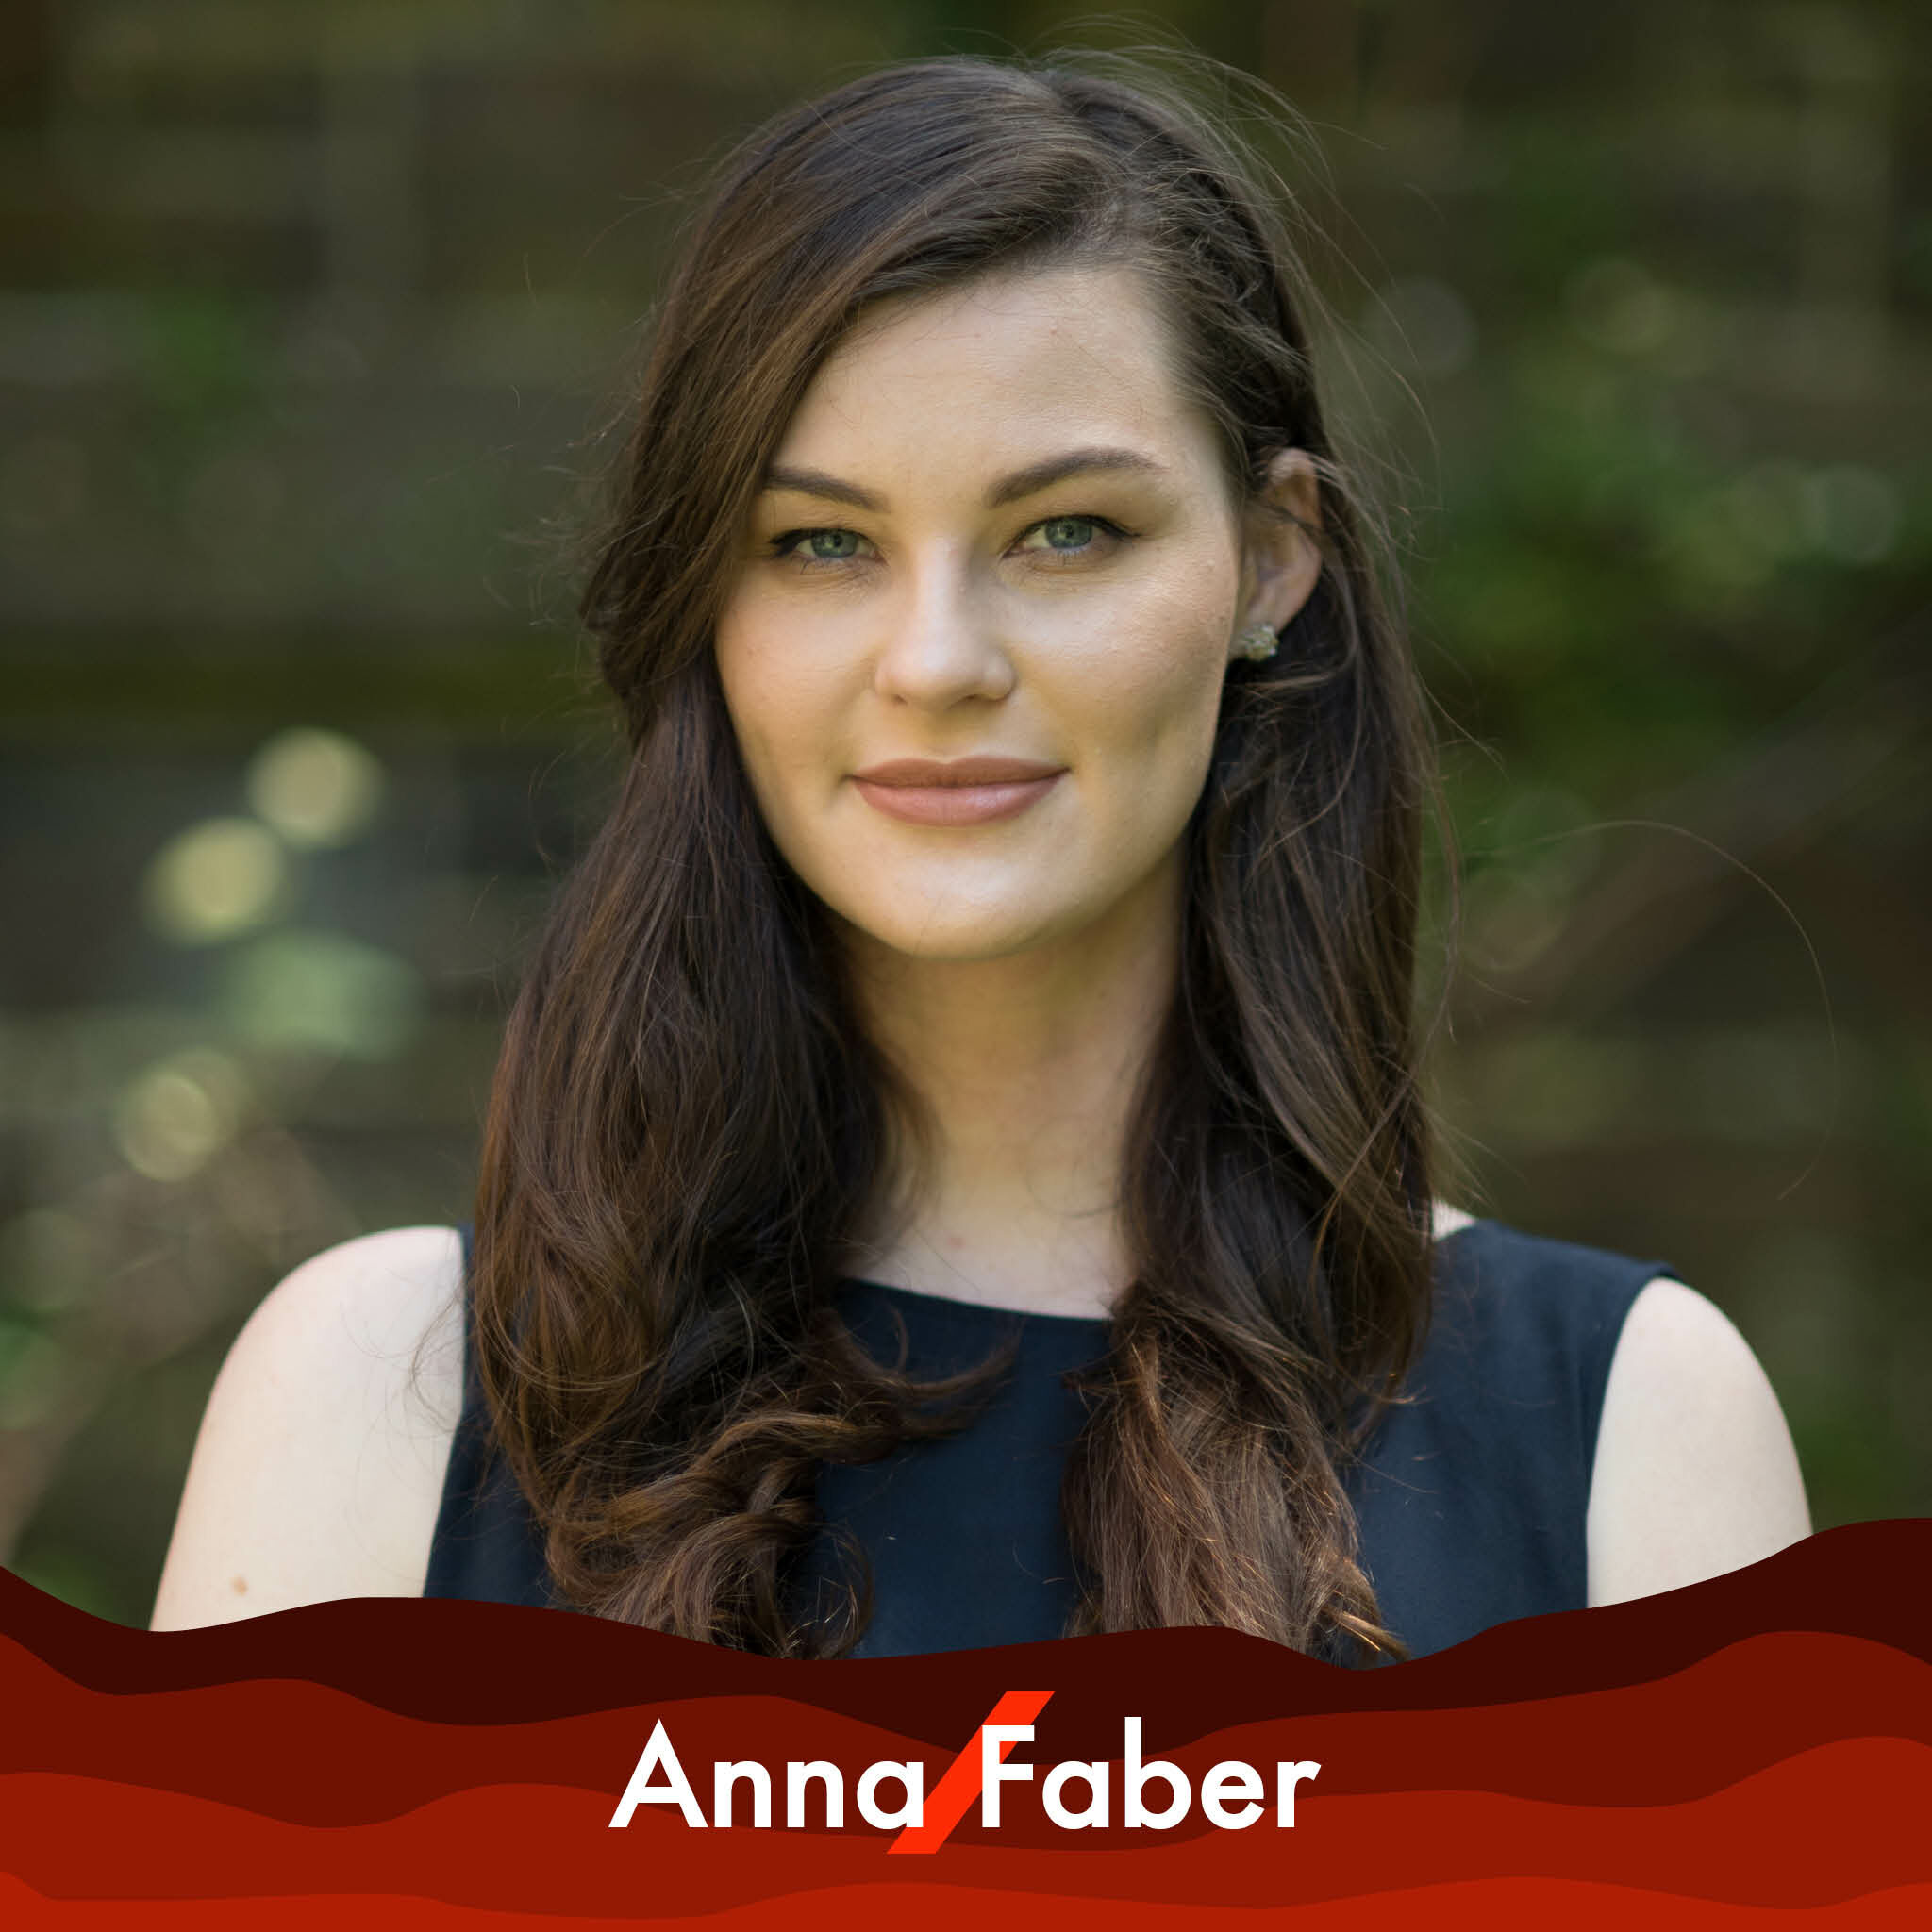 A picture of Anna Faber